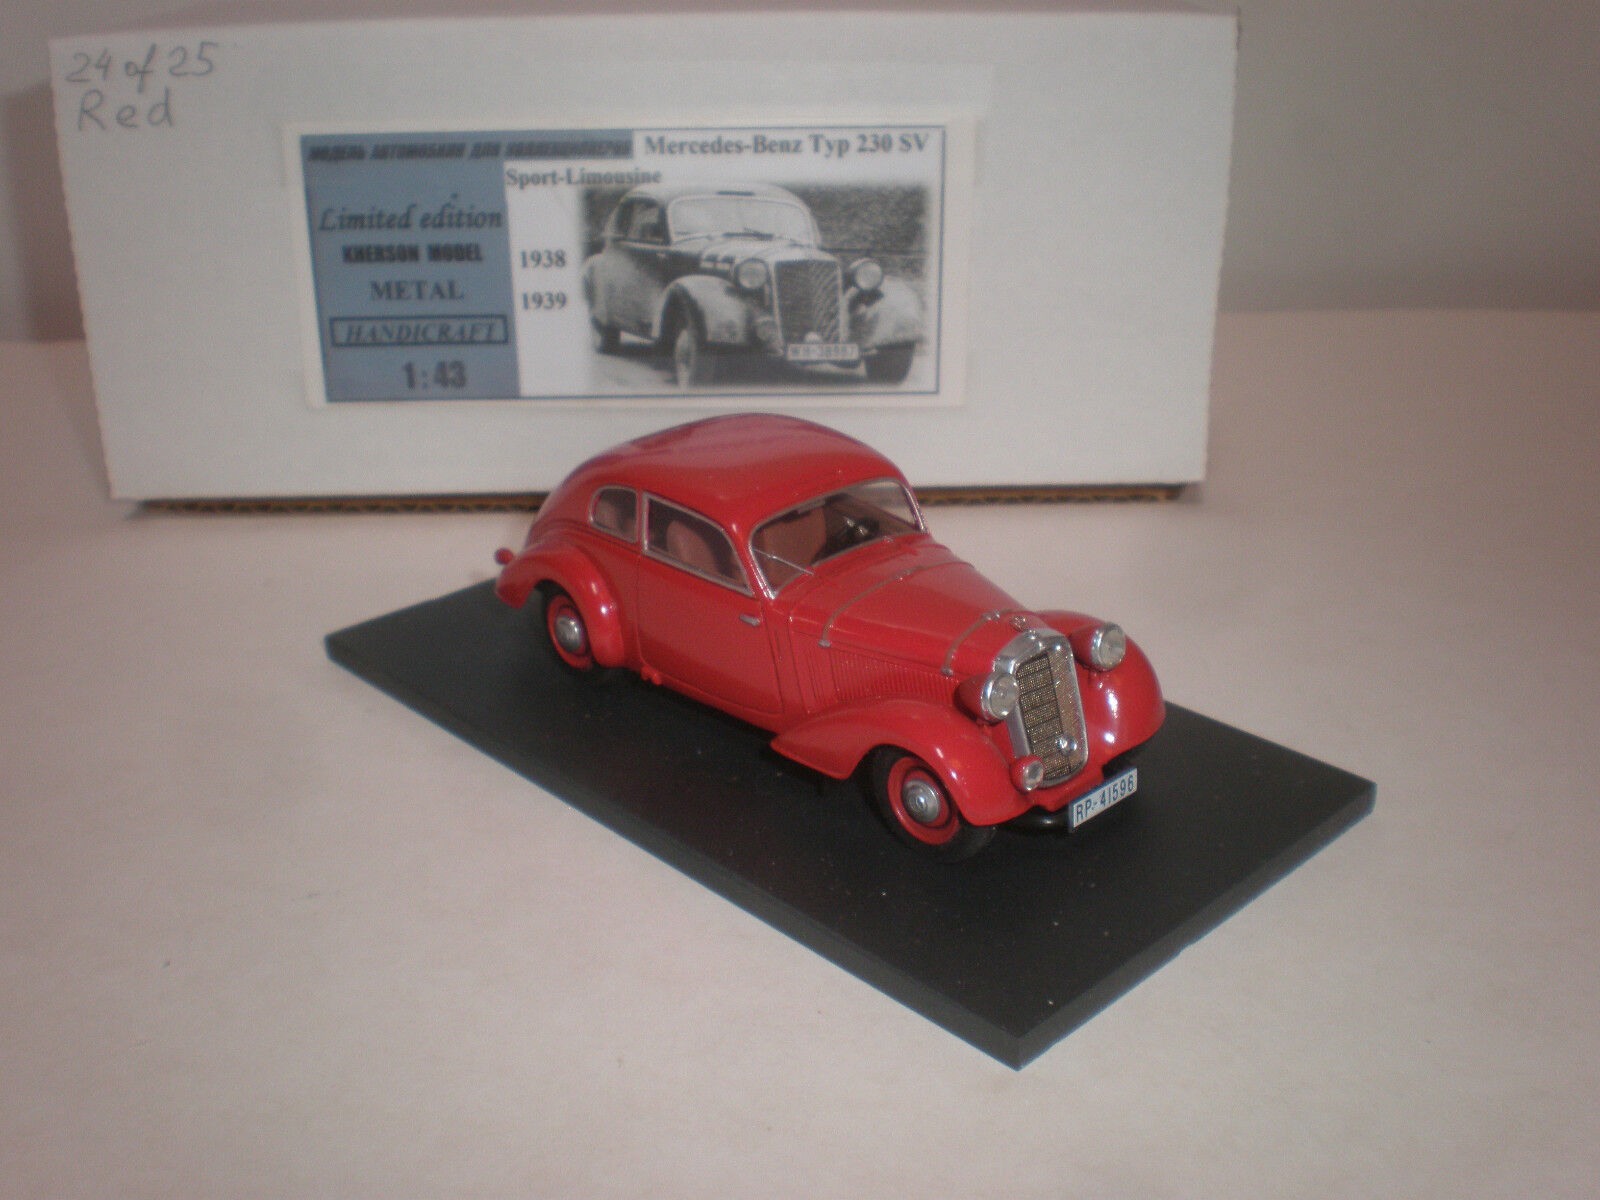 1 43 1938-1939 Mercedes Benz 230 SV Sport Limousine (street version) red